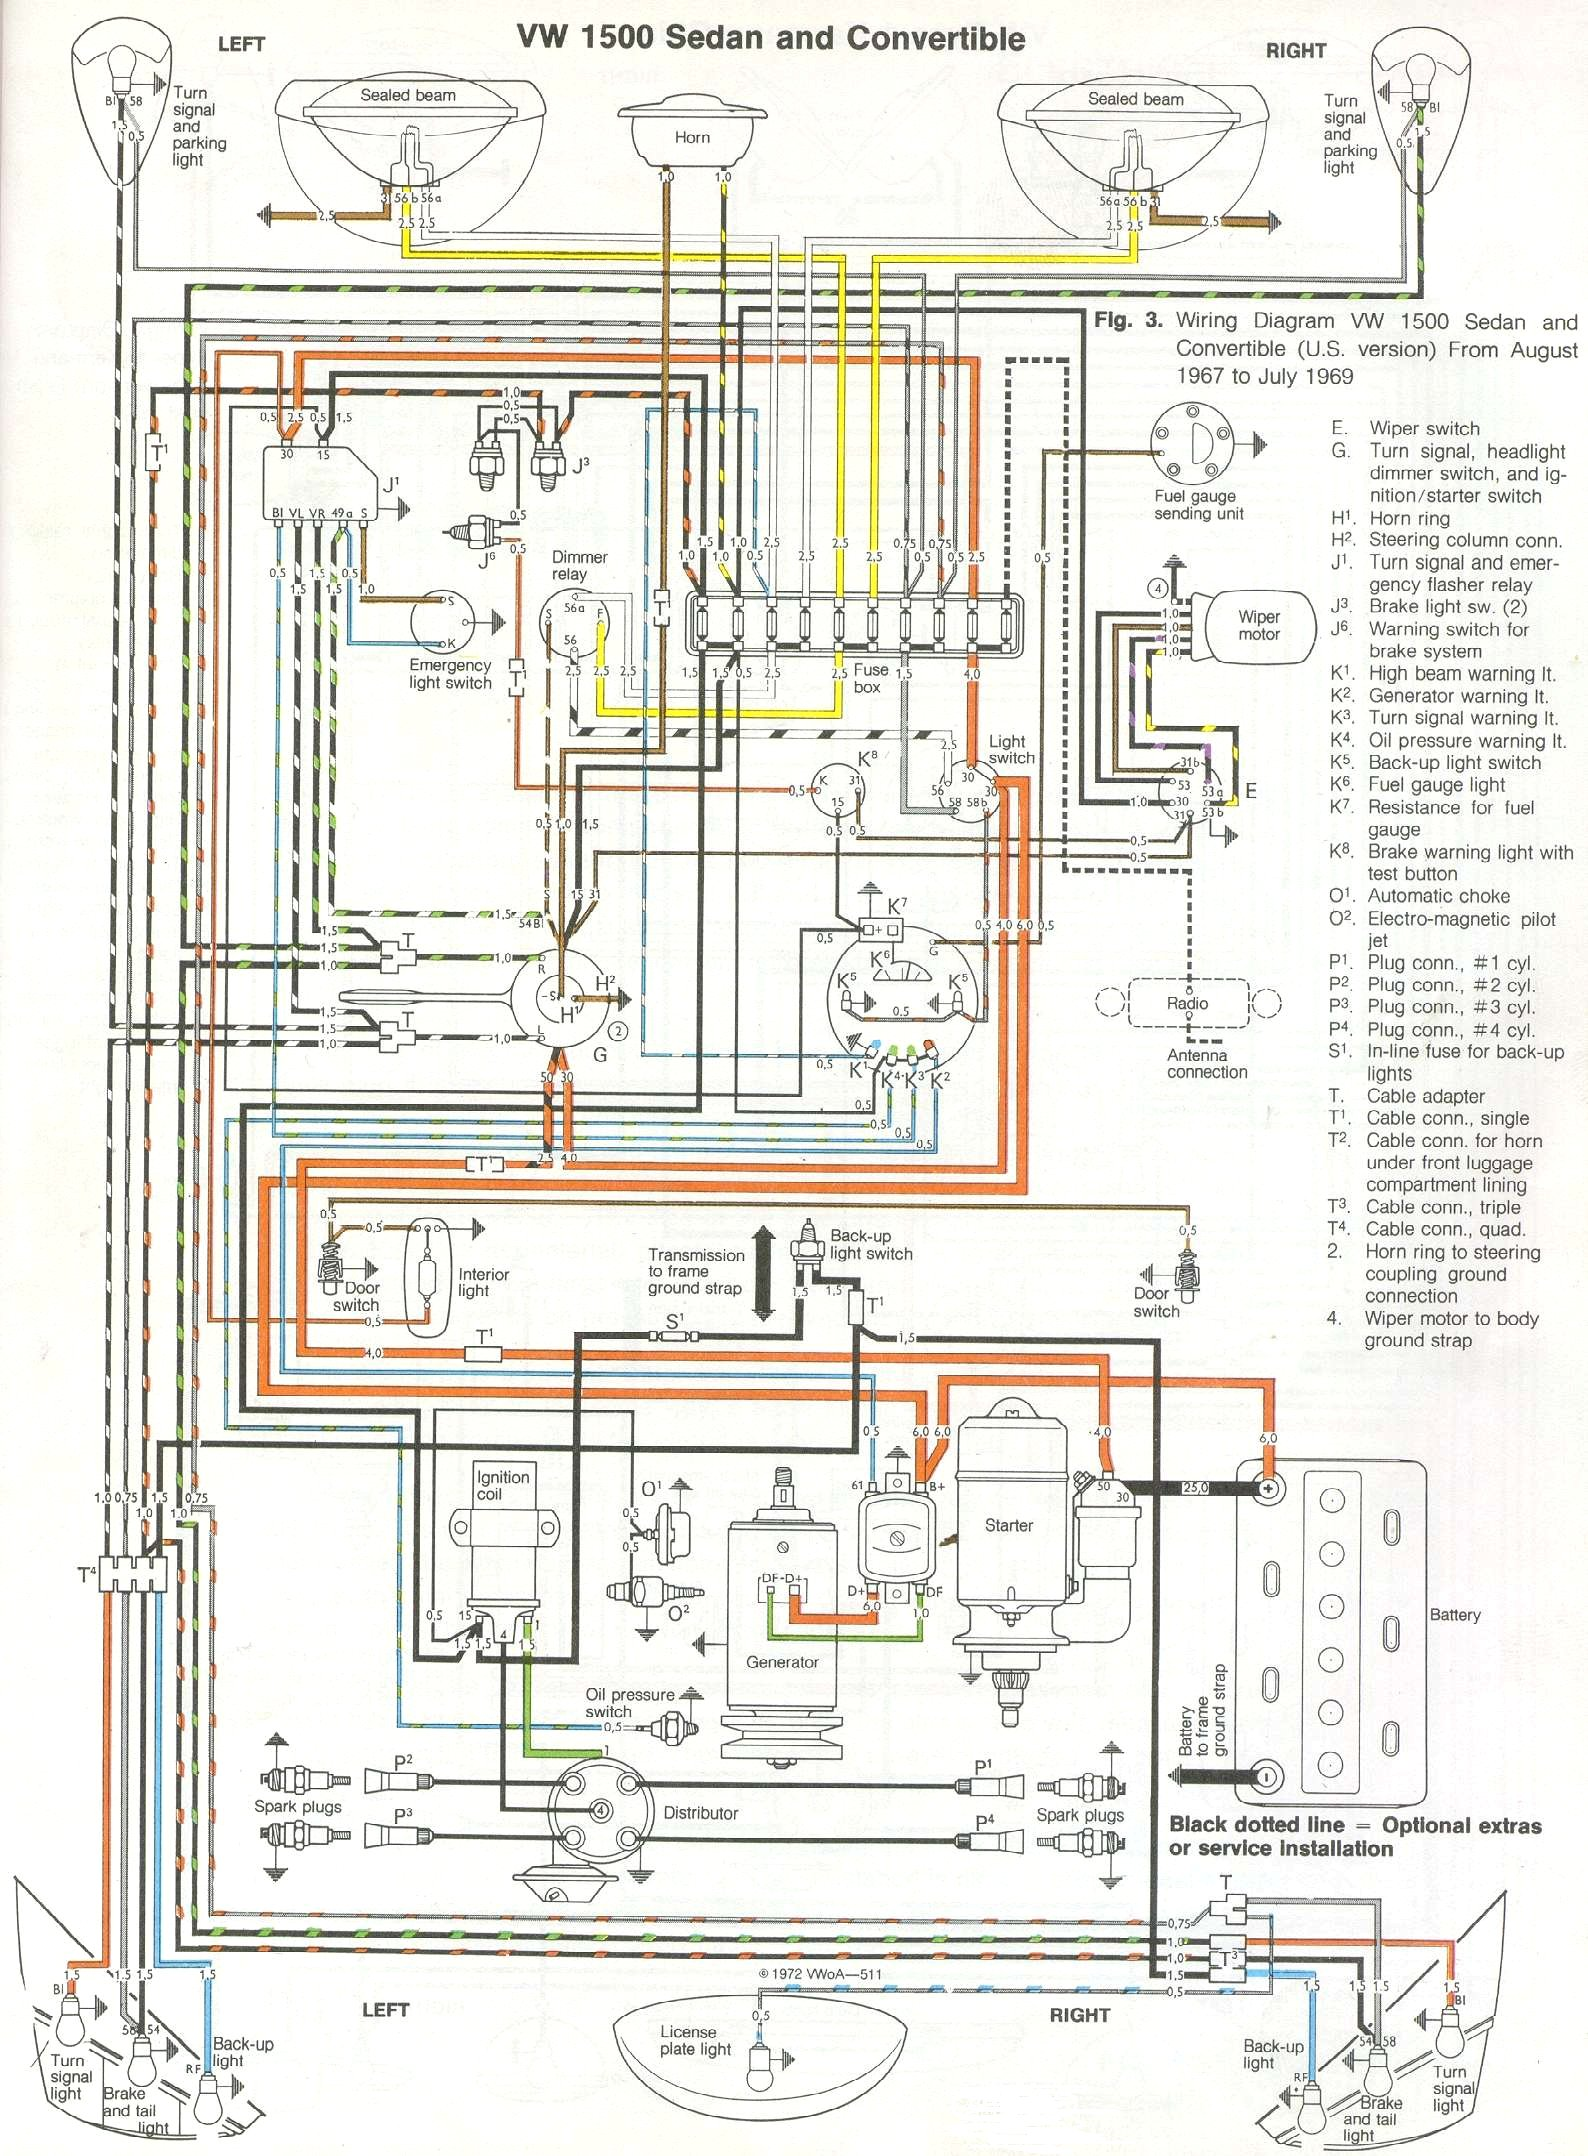 bug_6869 1969 71 beetle wiring diagram thegoldenbug com 1970 vw beetle wiring diagram at n-0.co